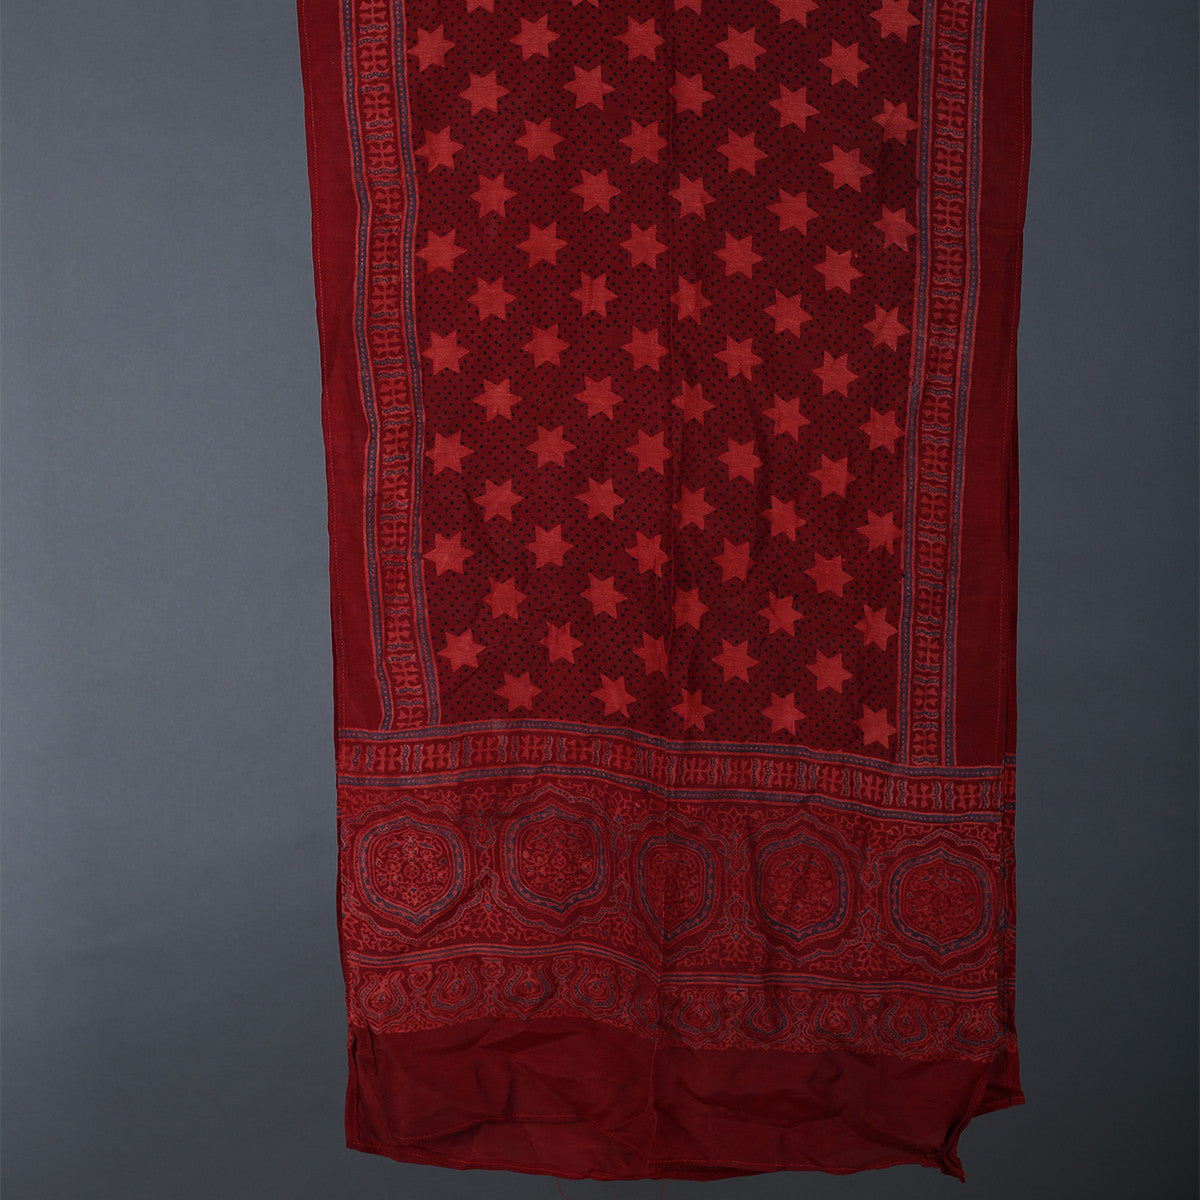 Ajrakh Hand Blockprinted Stole in Modal with plain star design